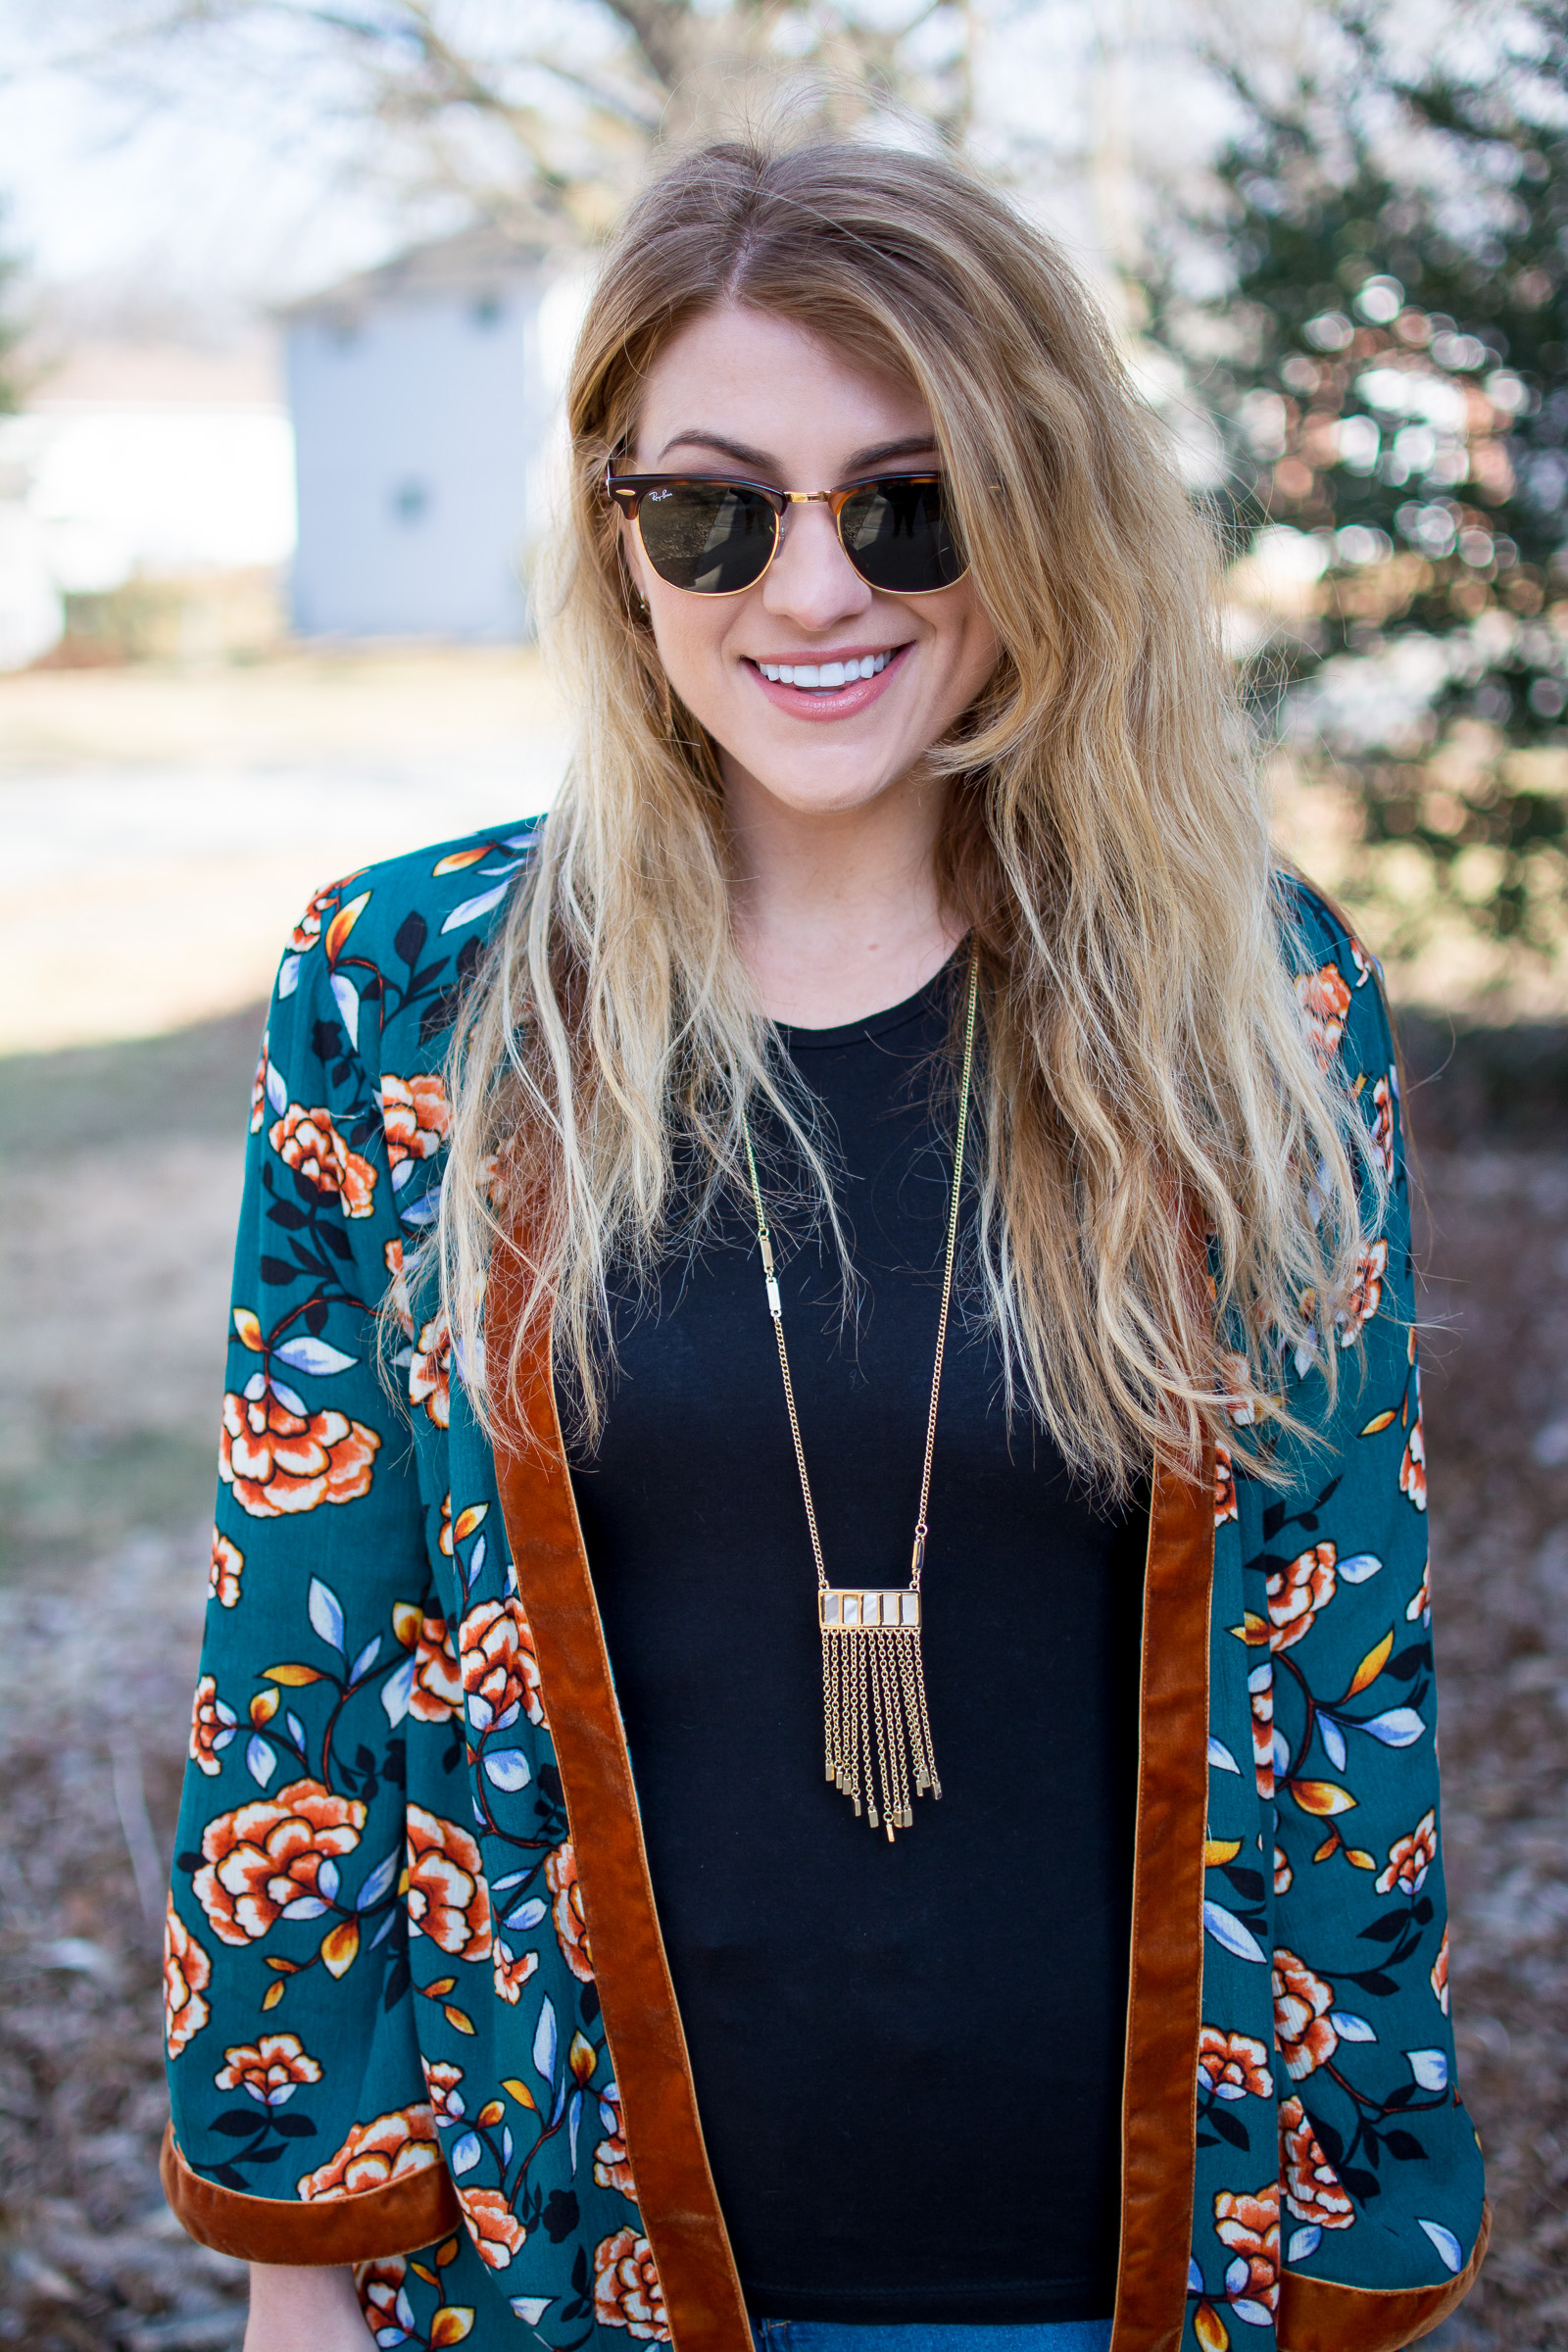 Ashley from LSR in a printed kimono and Ray Ban sunglasses